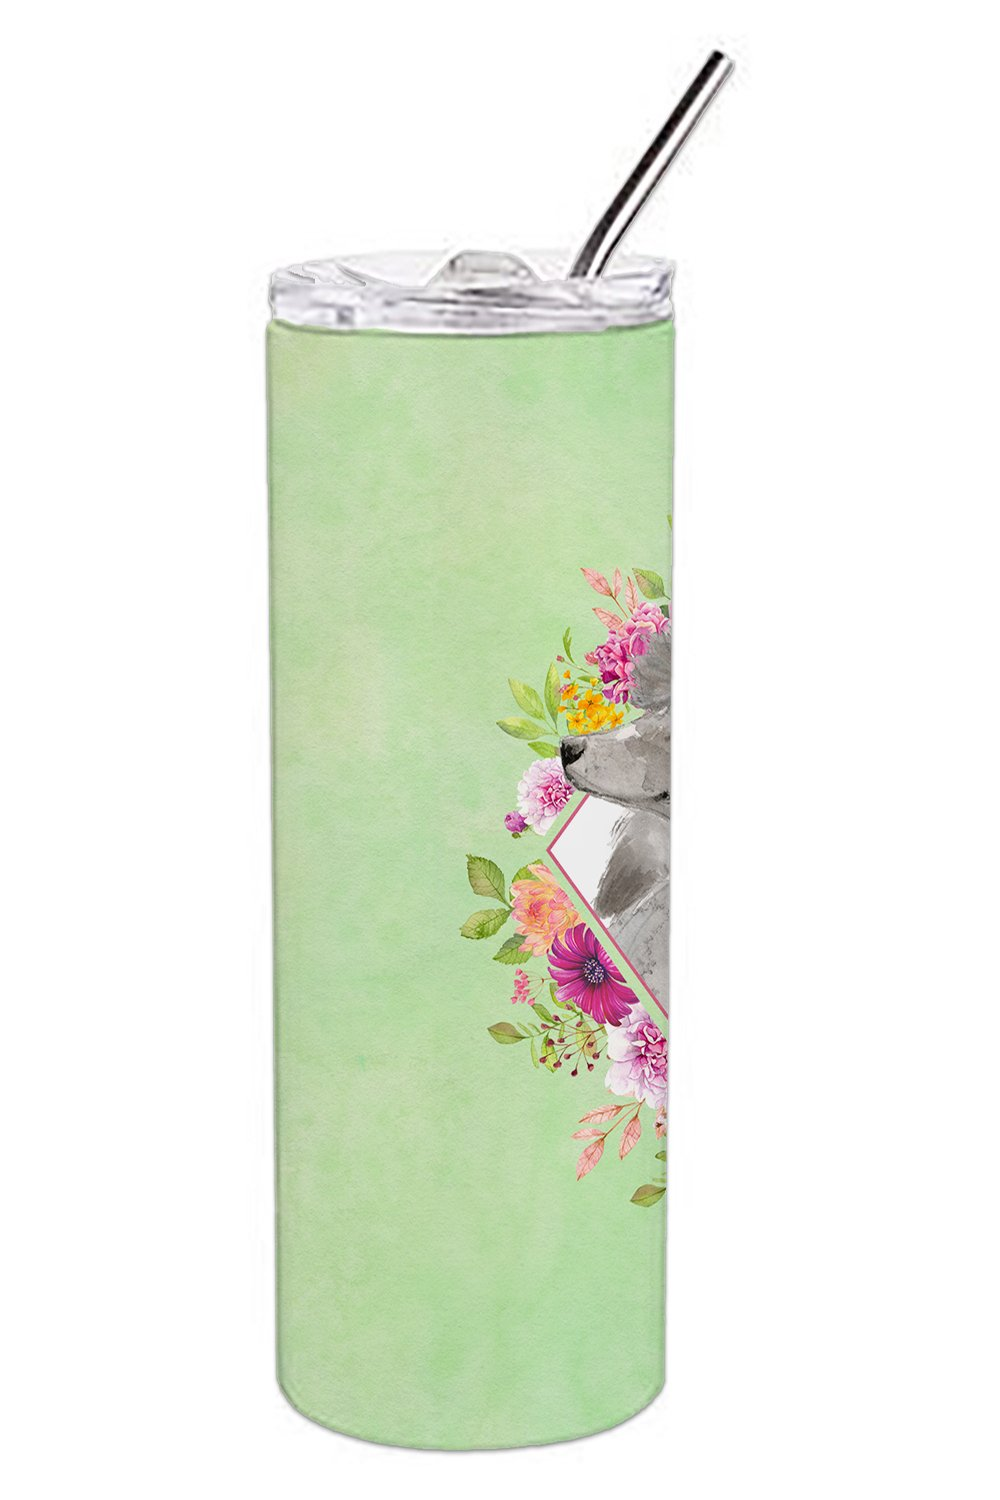 Grey Standard Poodle Green Flowers Double Walled Stainless Steel 20 oz Skinny Tumbler CK4393TBL20 by Caroline's Treasures